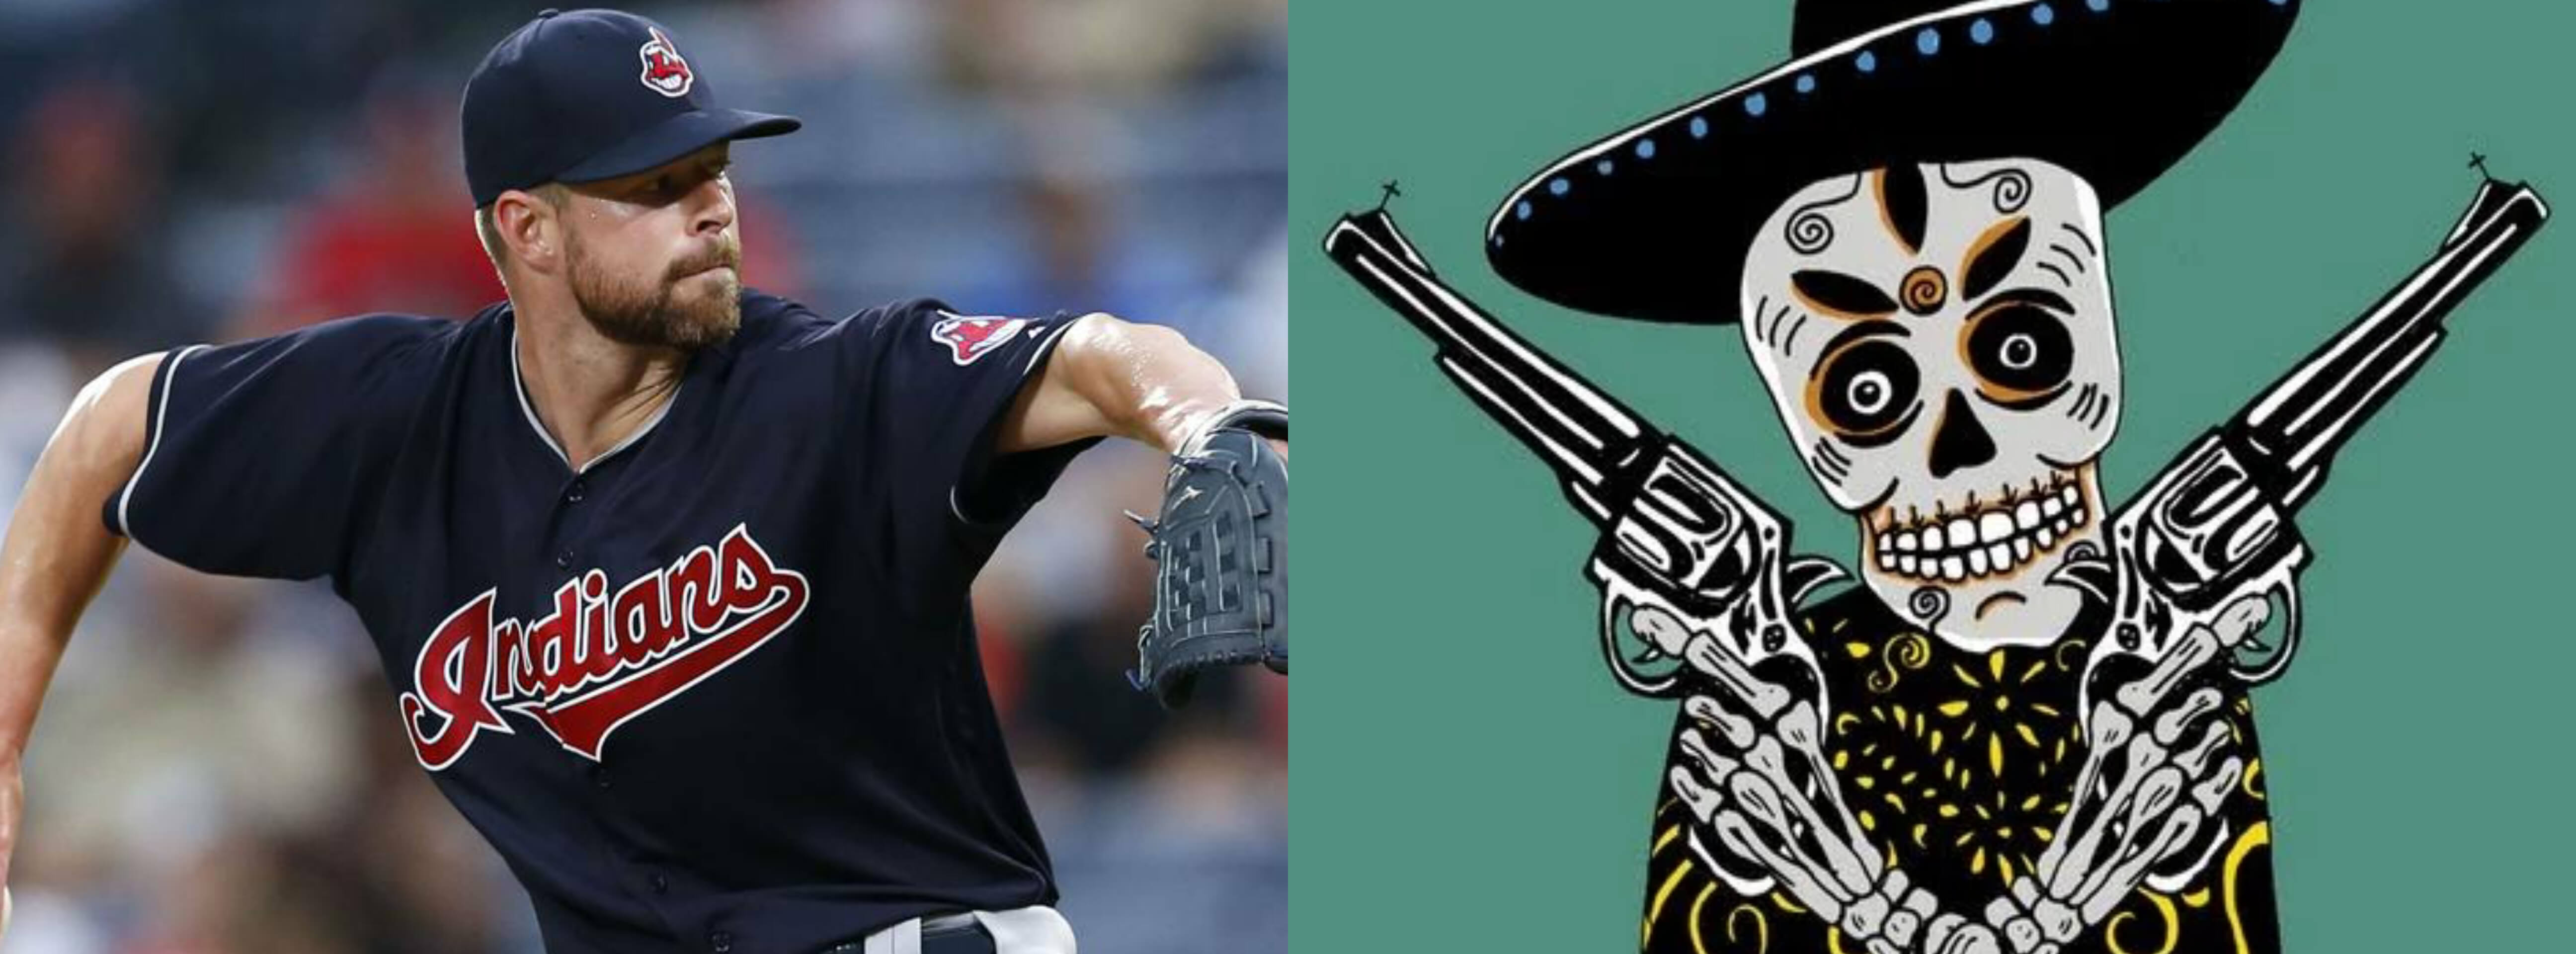 Corey Kluber taiwan nickname is uncle skeleton